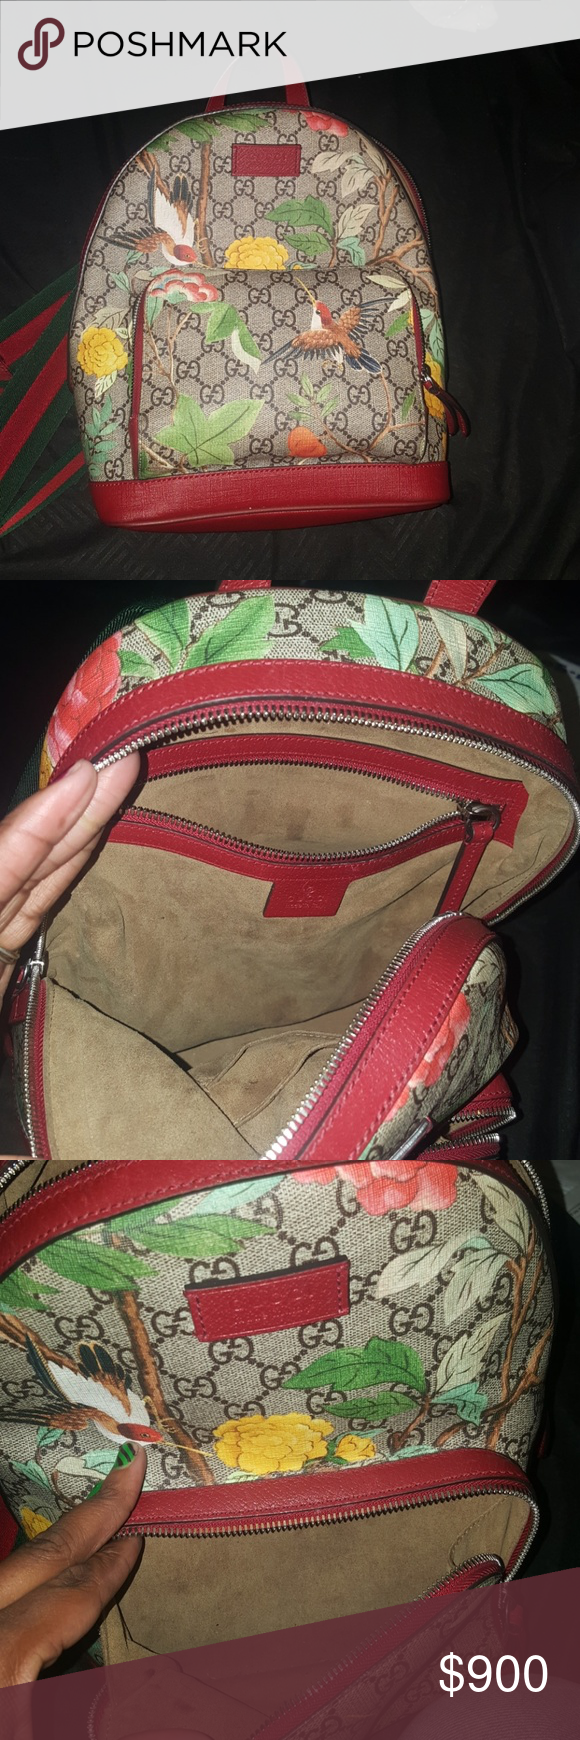 648bc277bd5 Gucci Tian GG Supreme Backpack Woman s Gucci backpack with floral pattern